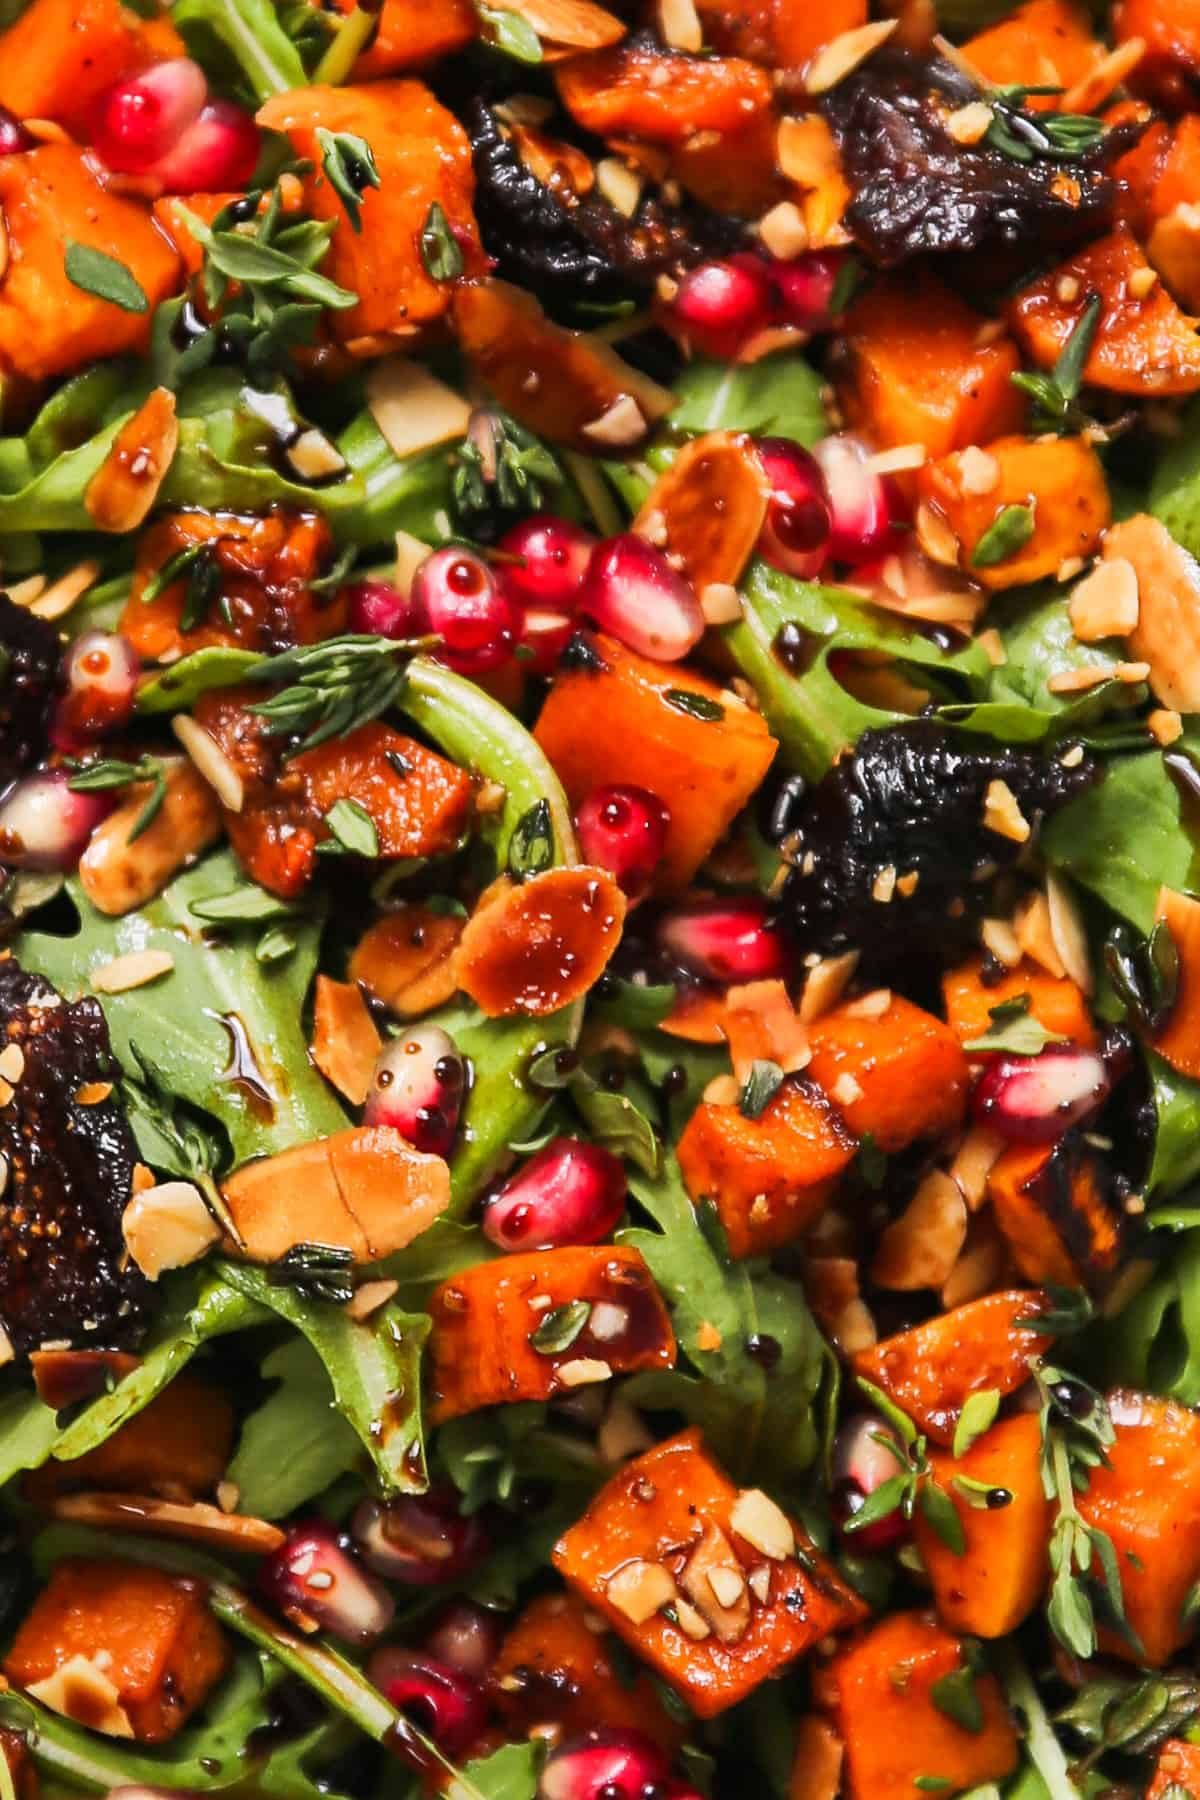 close-up of Fall Salad with Butternut Squash, Arugula, Dried Figs, and Almonds